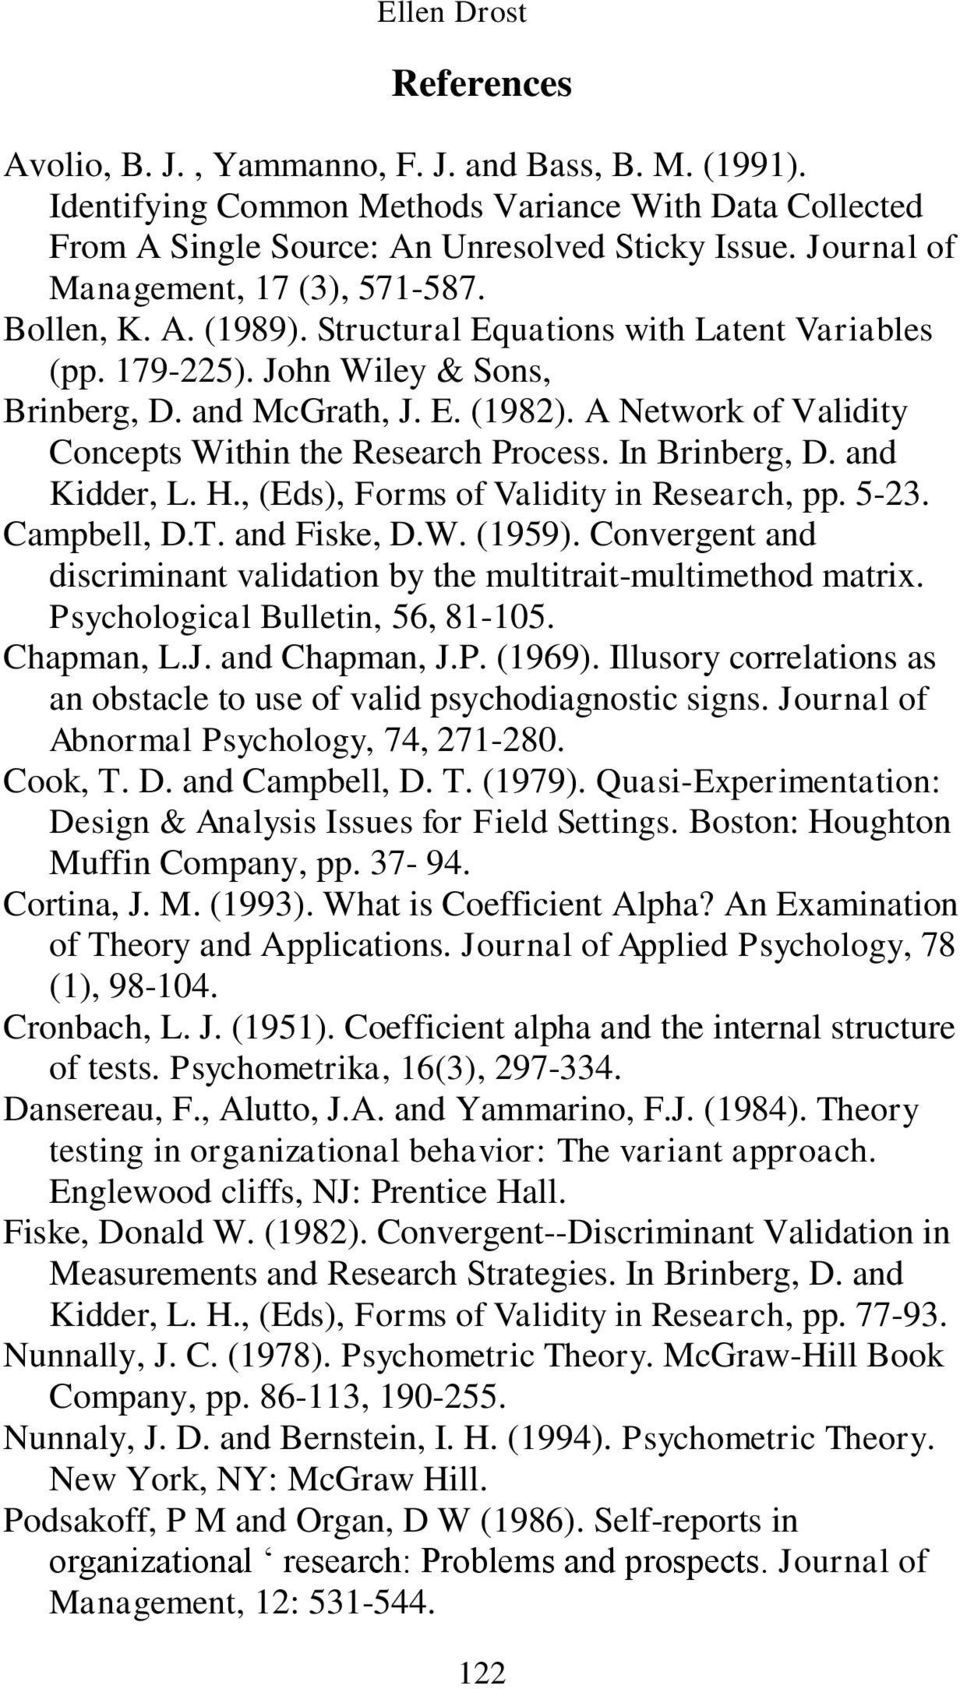 A Network of Validity Concepts Within the Research Process. In Brinberg, D. and Kidder, L. H., (Eds), Forms of Validity in Research, pp. 5-23. Campbell, D.T. and Fiske, D.W. (1959).